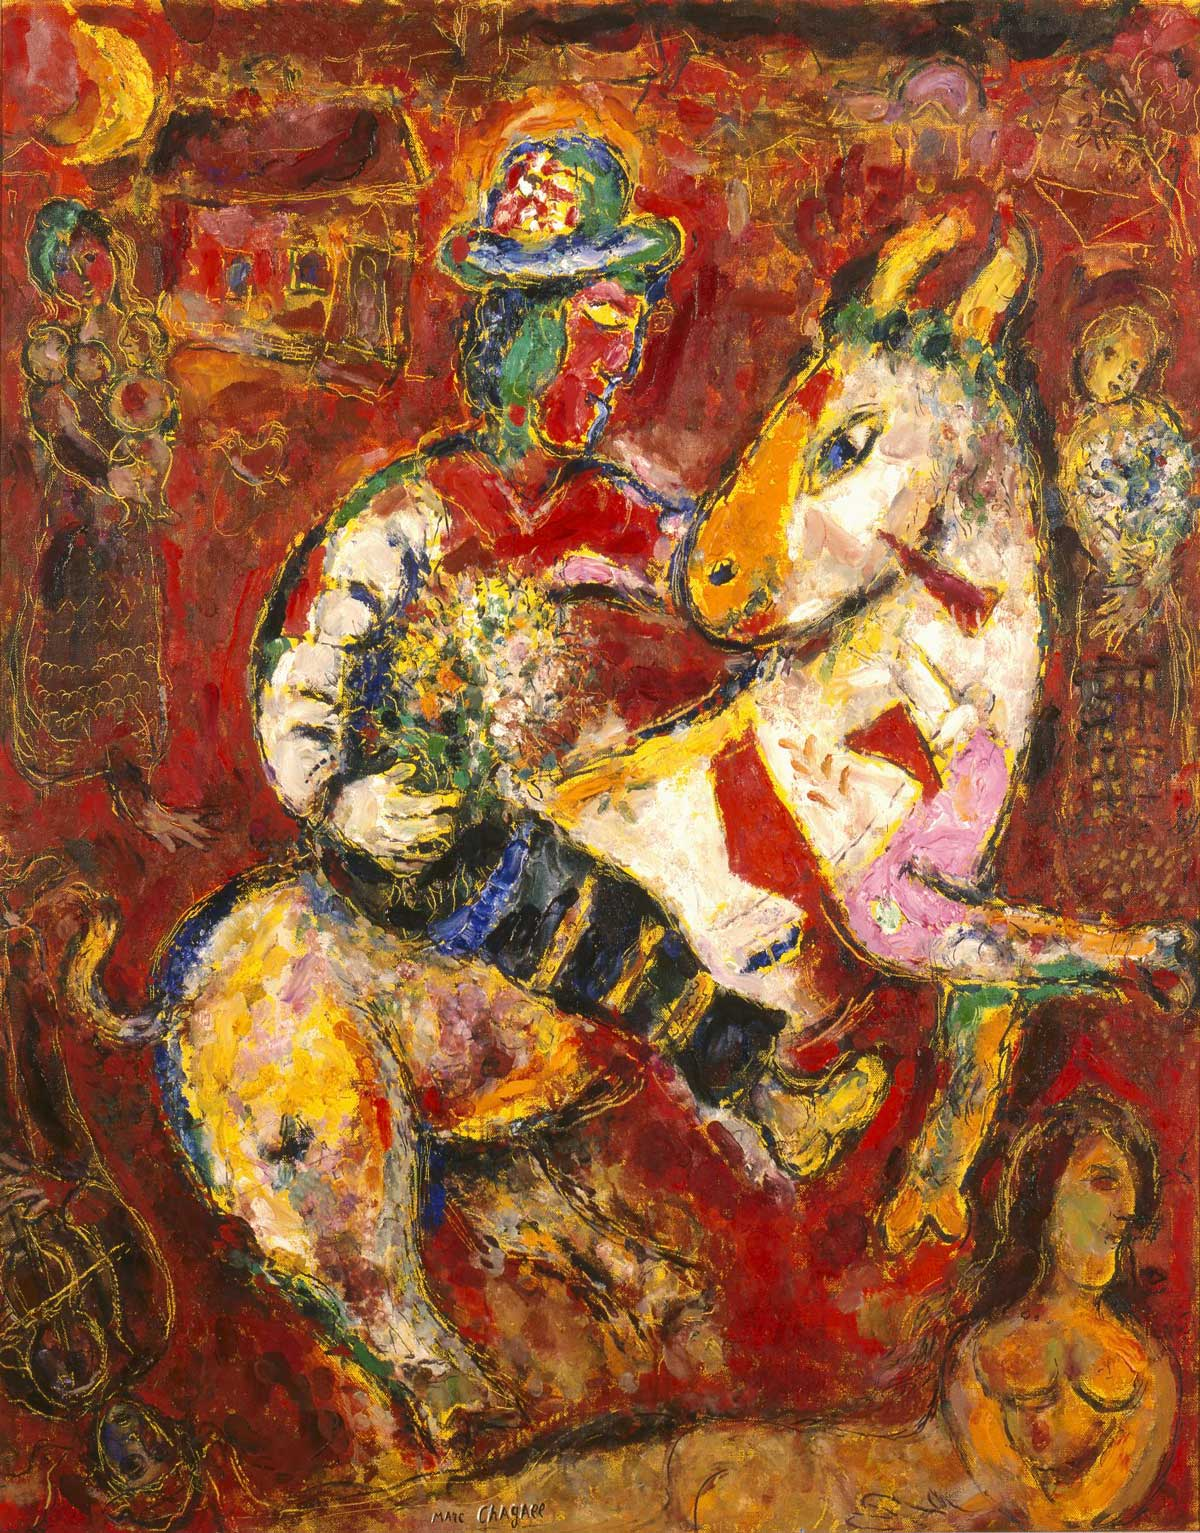 Man on the back of a horse holding a bouquet of flowers